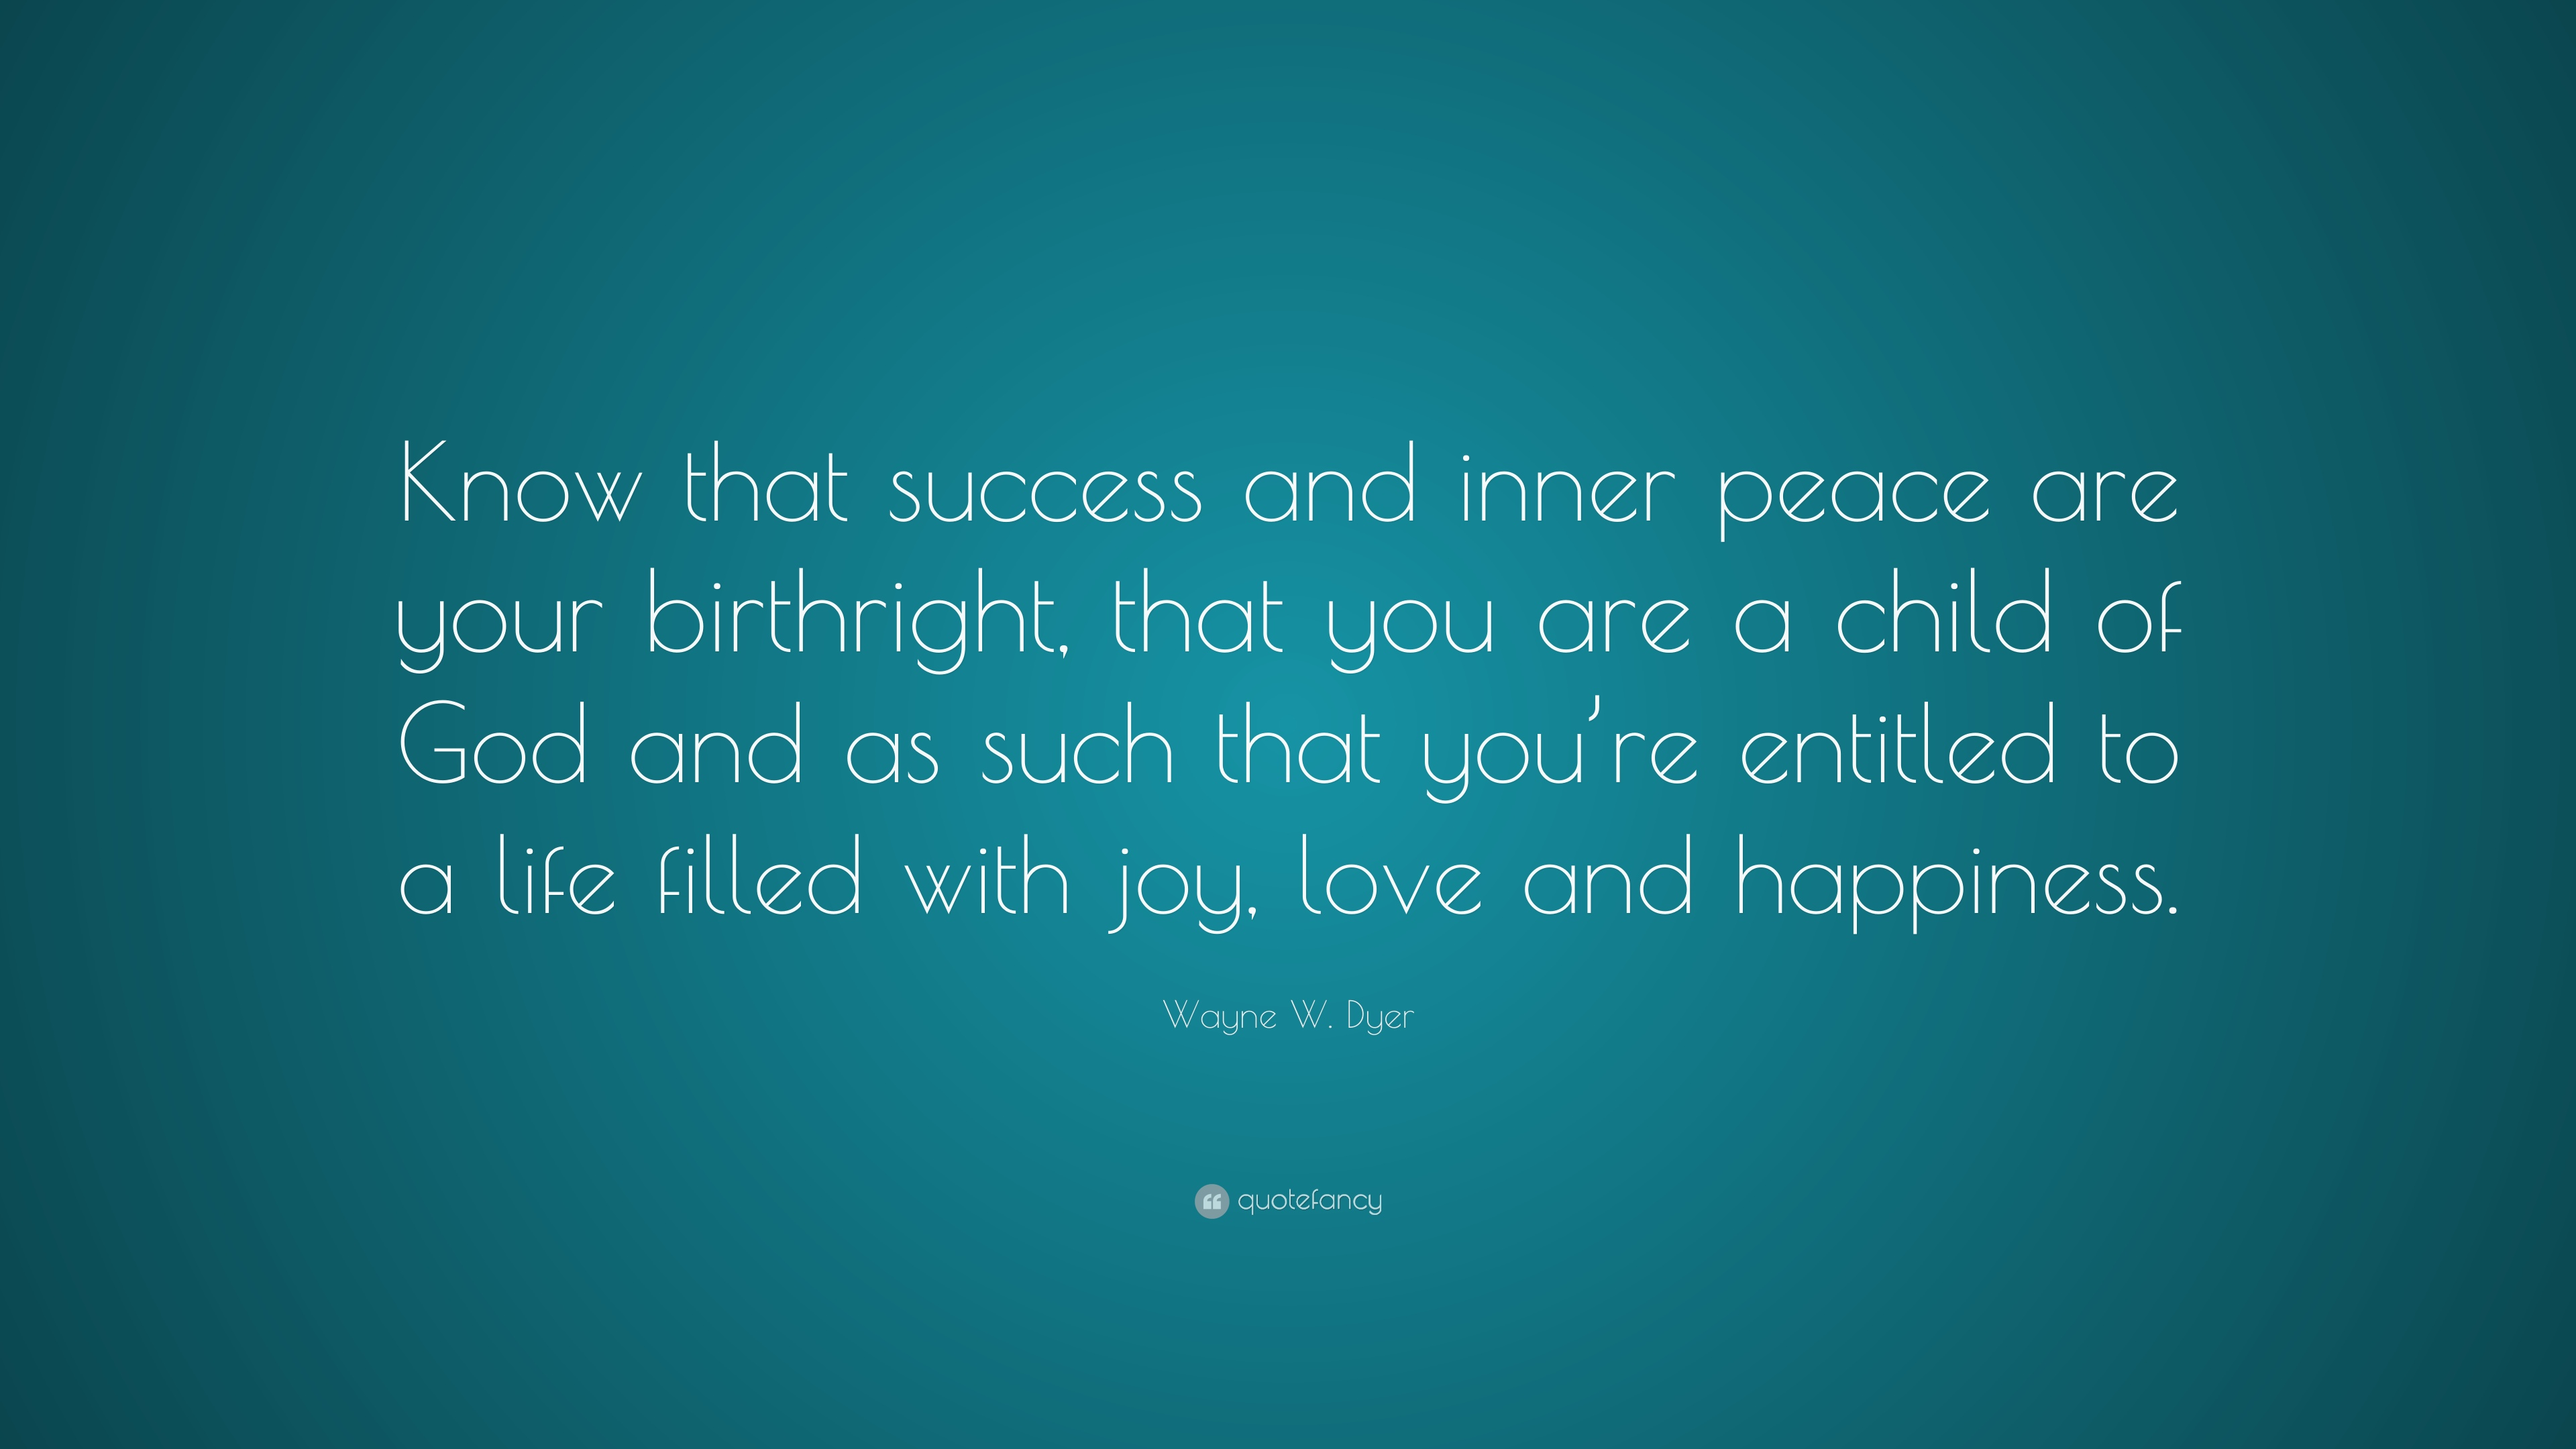 Wayne W Dyer Quote Know That Success And Inner Peace Are